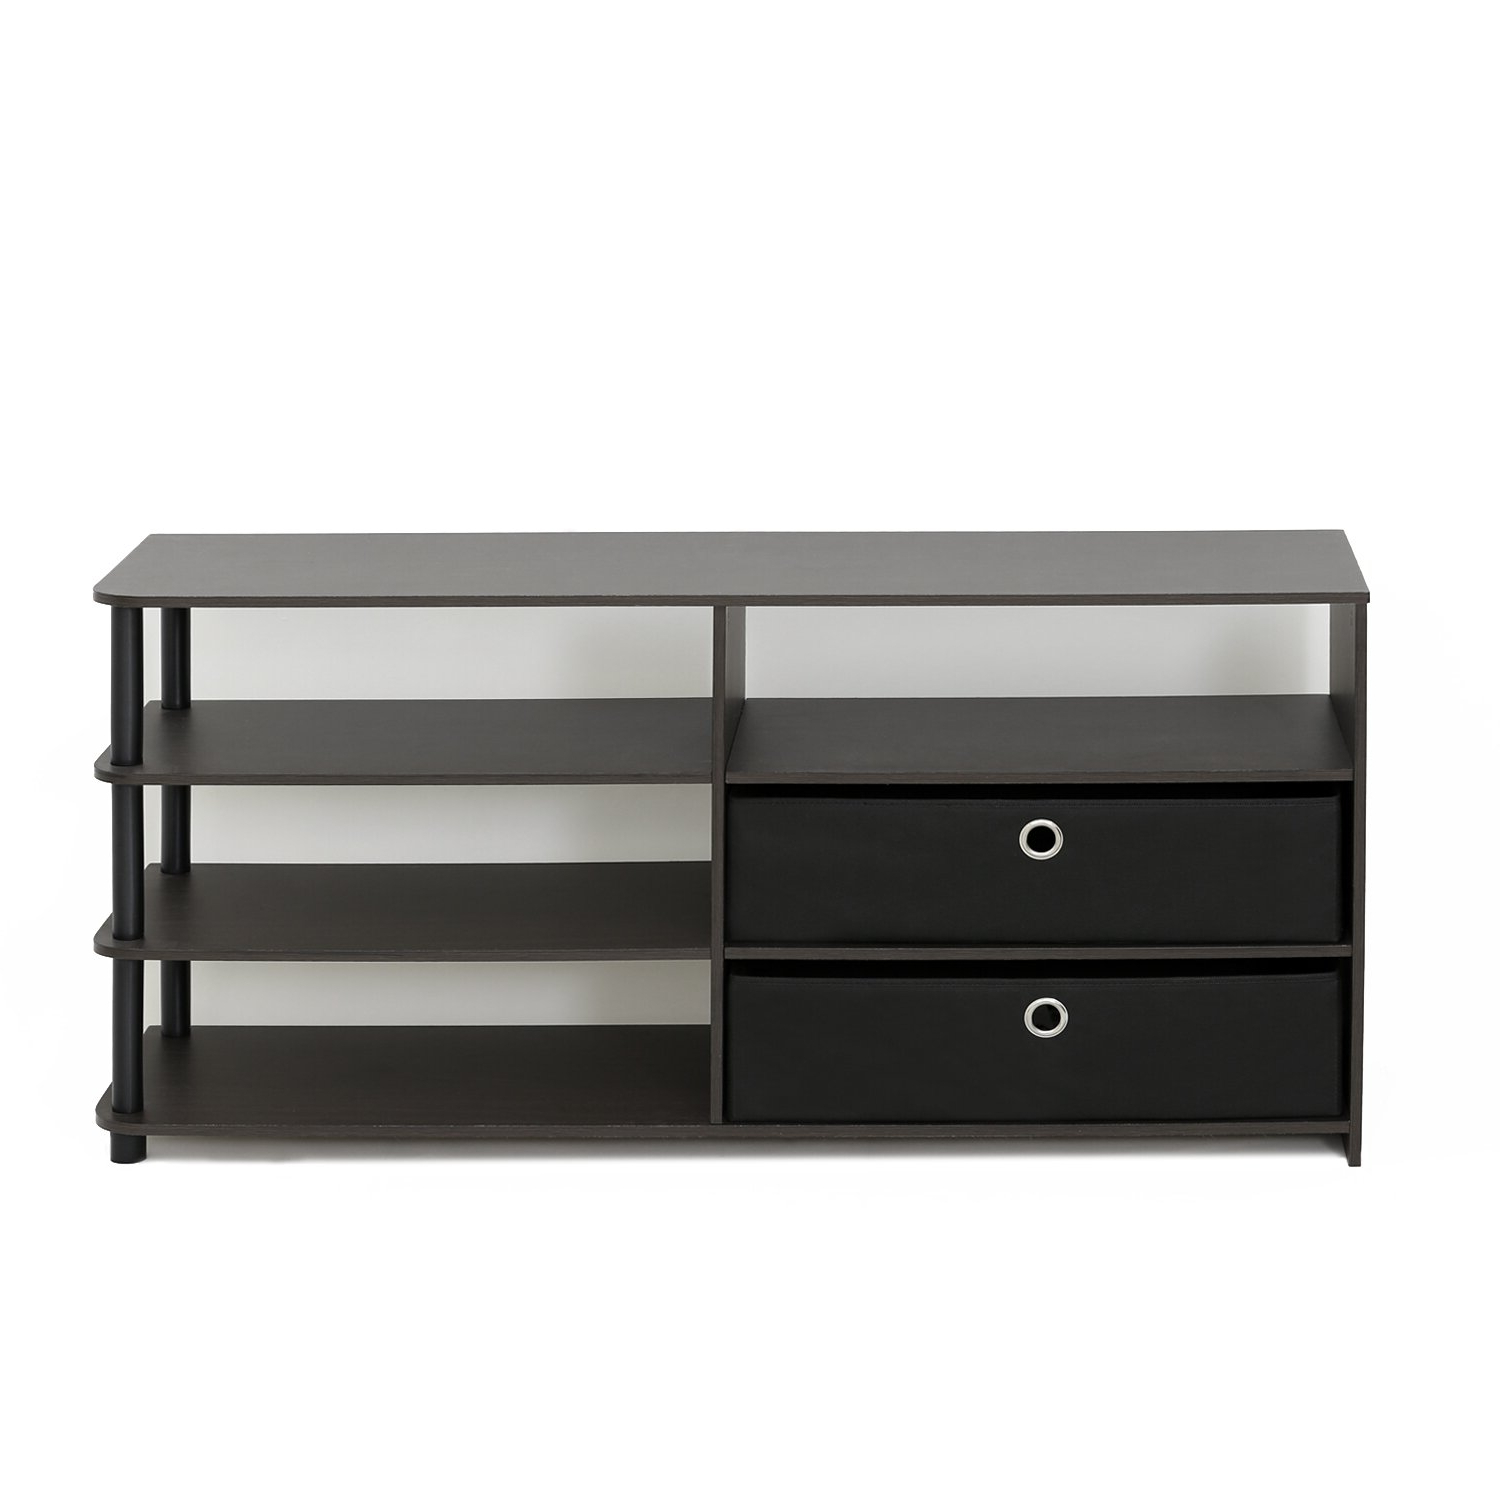 """Furinno Furinno Jaya Simple Design 50"""" Tv Stand With Bins Regarding Simple Tv Stands (View 6 of 16)"""